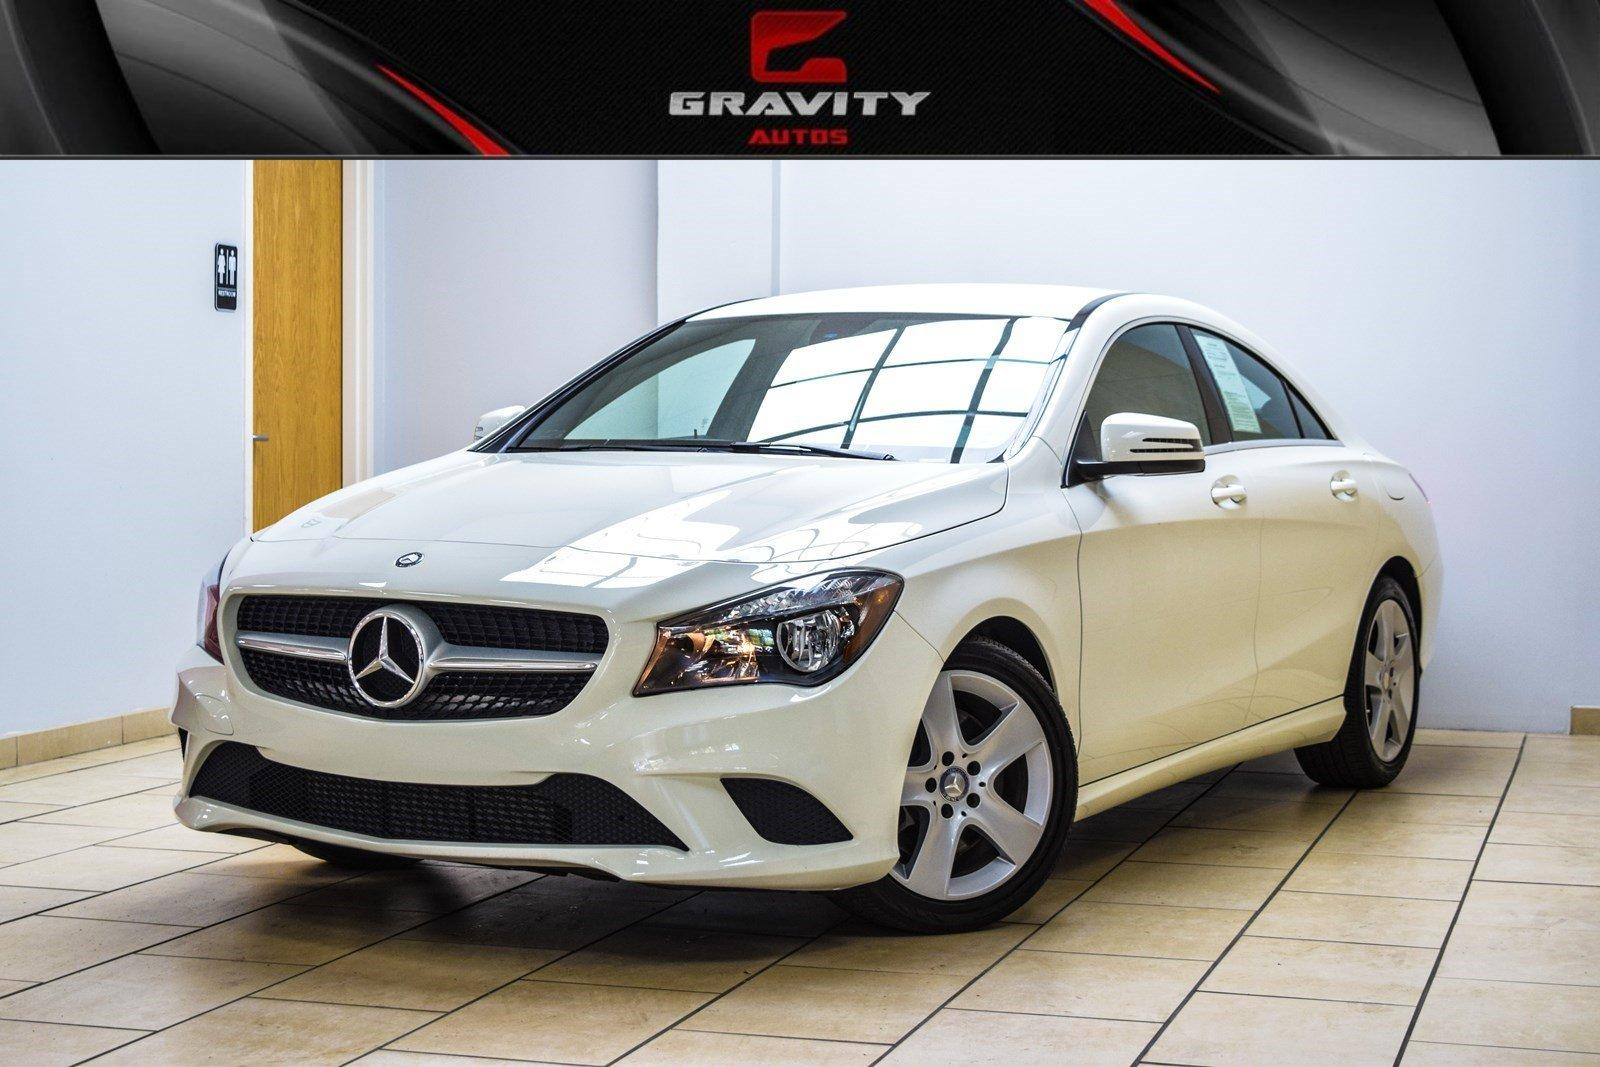 2015 mercedes benz cla class cla 250 stock 190569 for sale near sandy springs ga ga. Black Bedroom Furniture Sets. Home Design Ideas